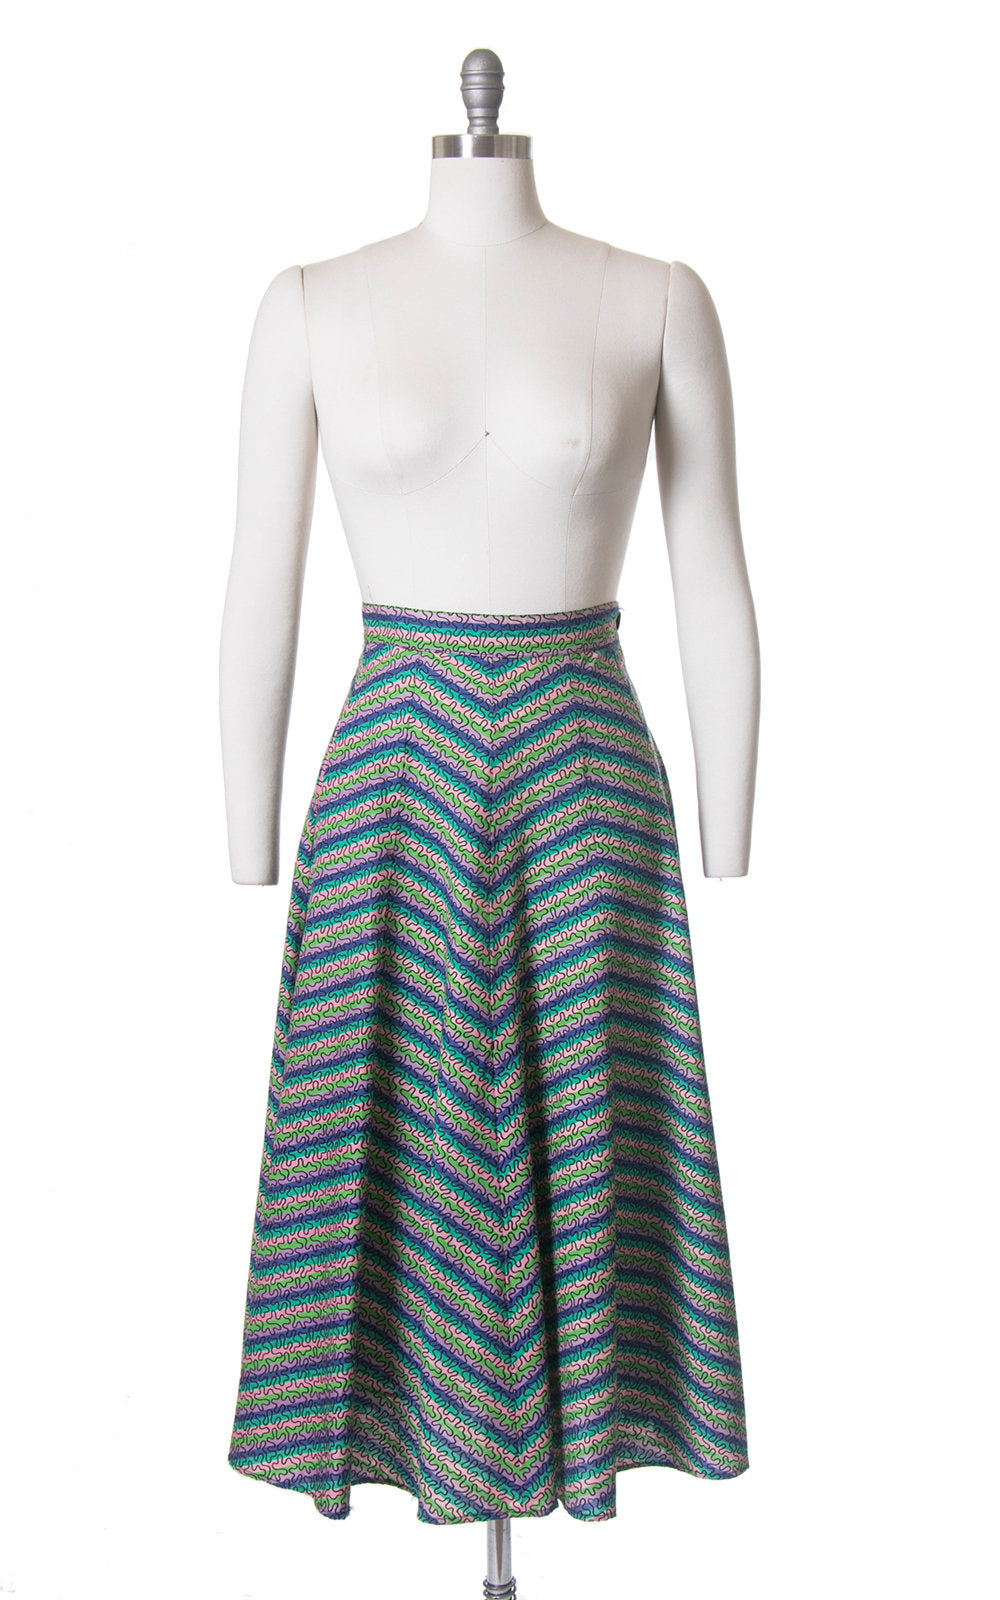 Vintage 1950s Skirt | 50s Rainbow Chevron Striped Soutache Flocked Full Skirt (small)